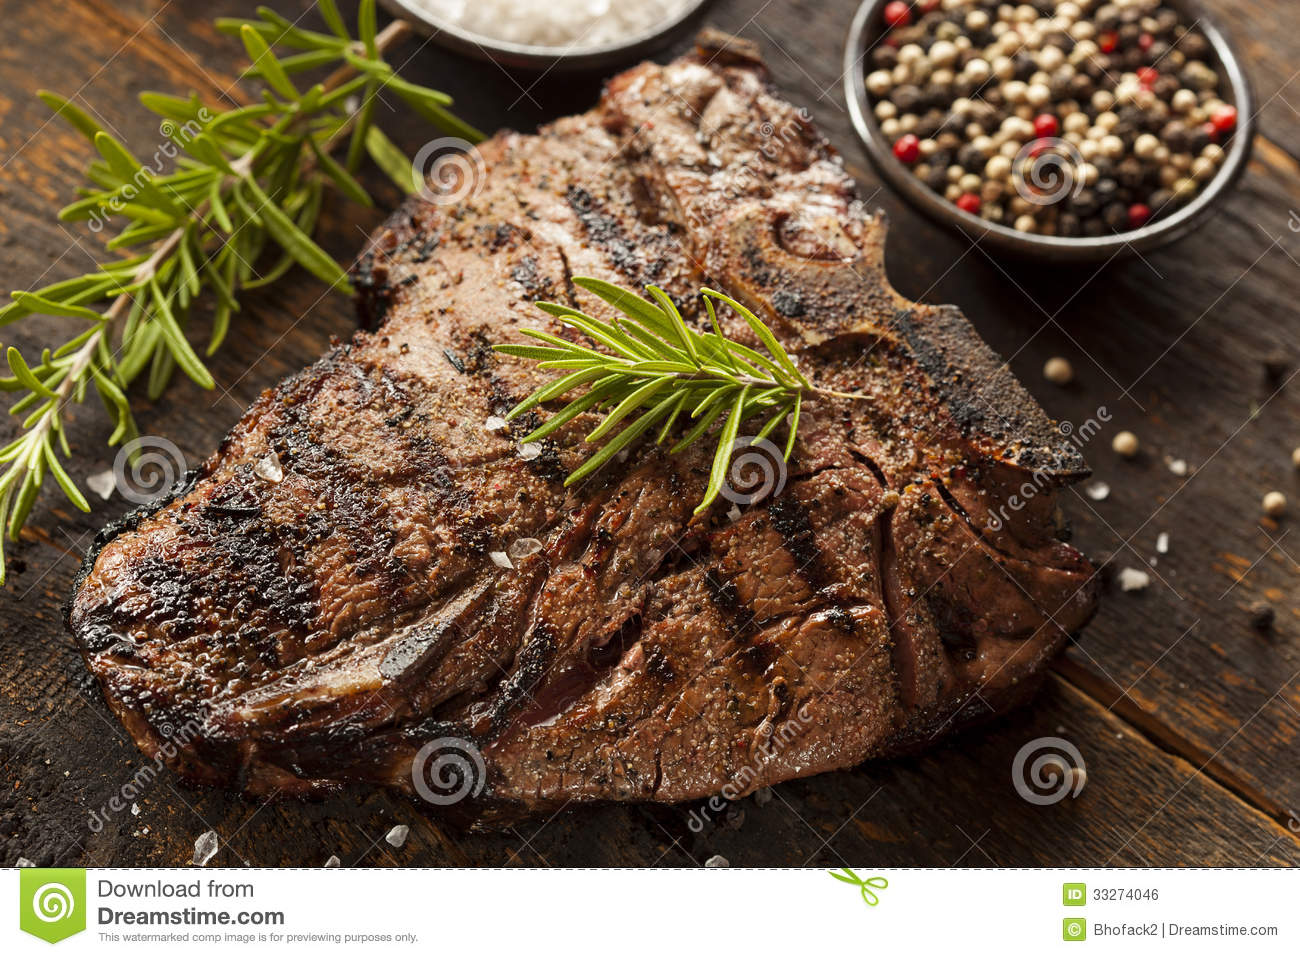 Grilled BBQ T-Bone Steak Royalty Free Stock Image - Image: 33274046